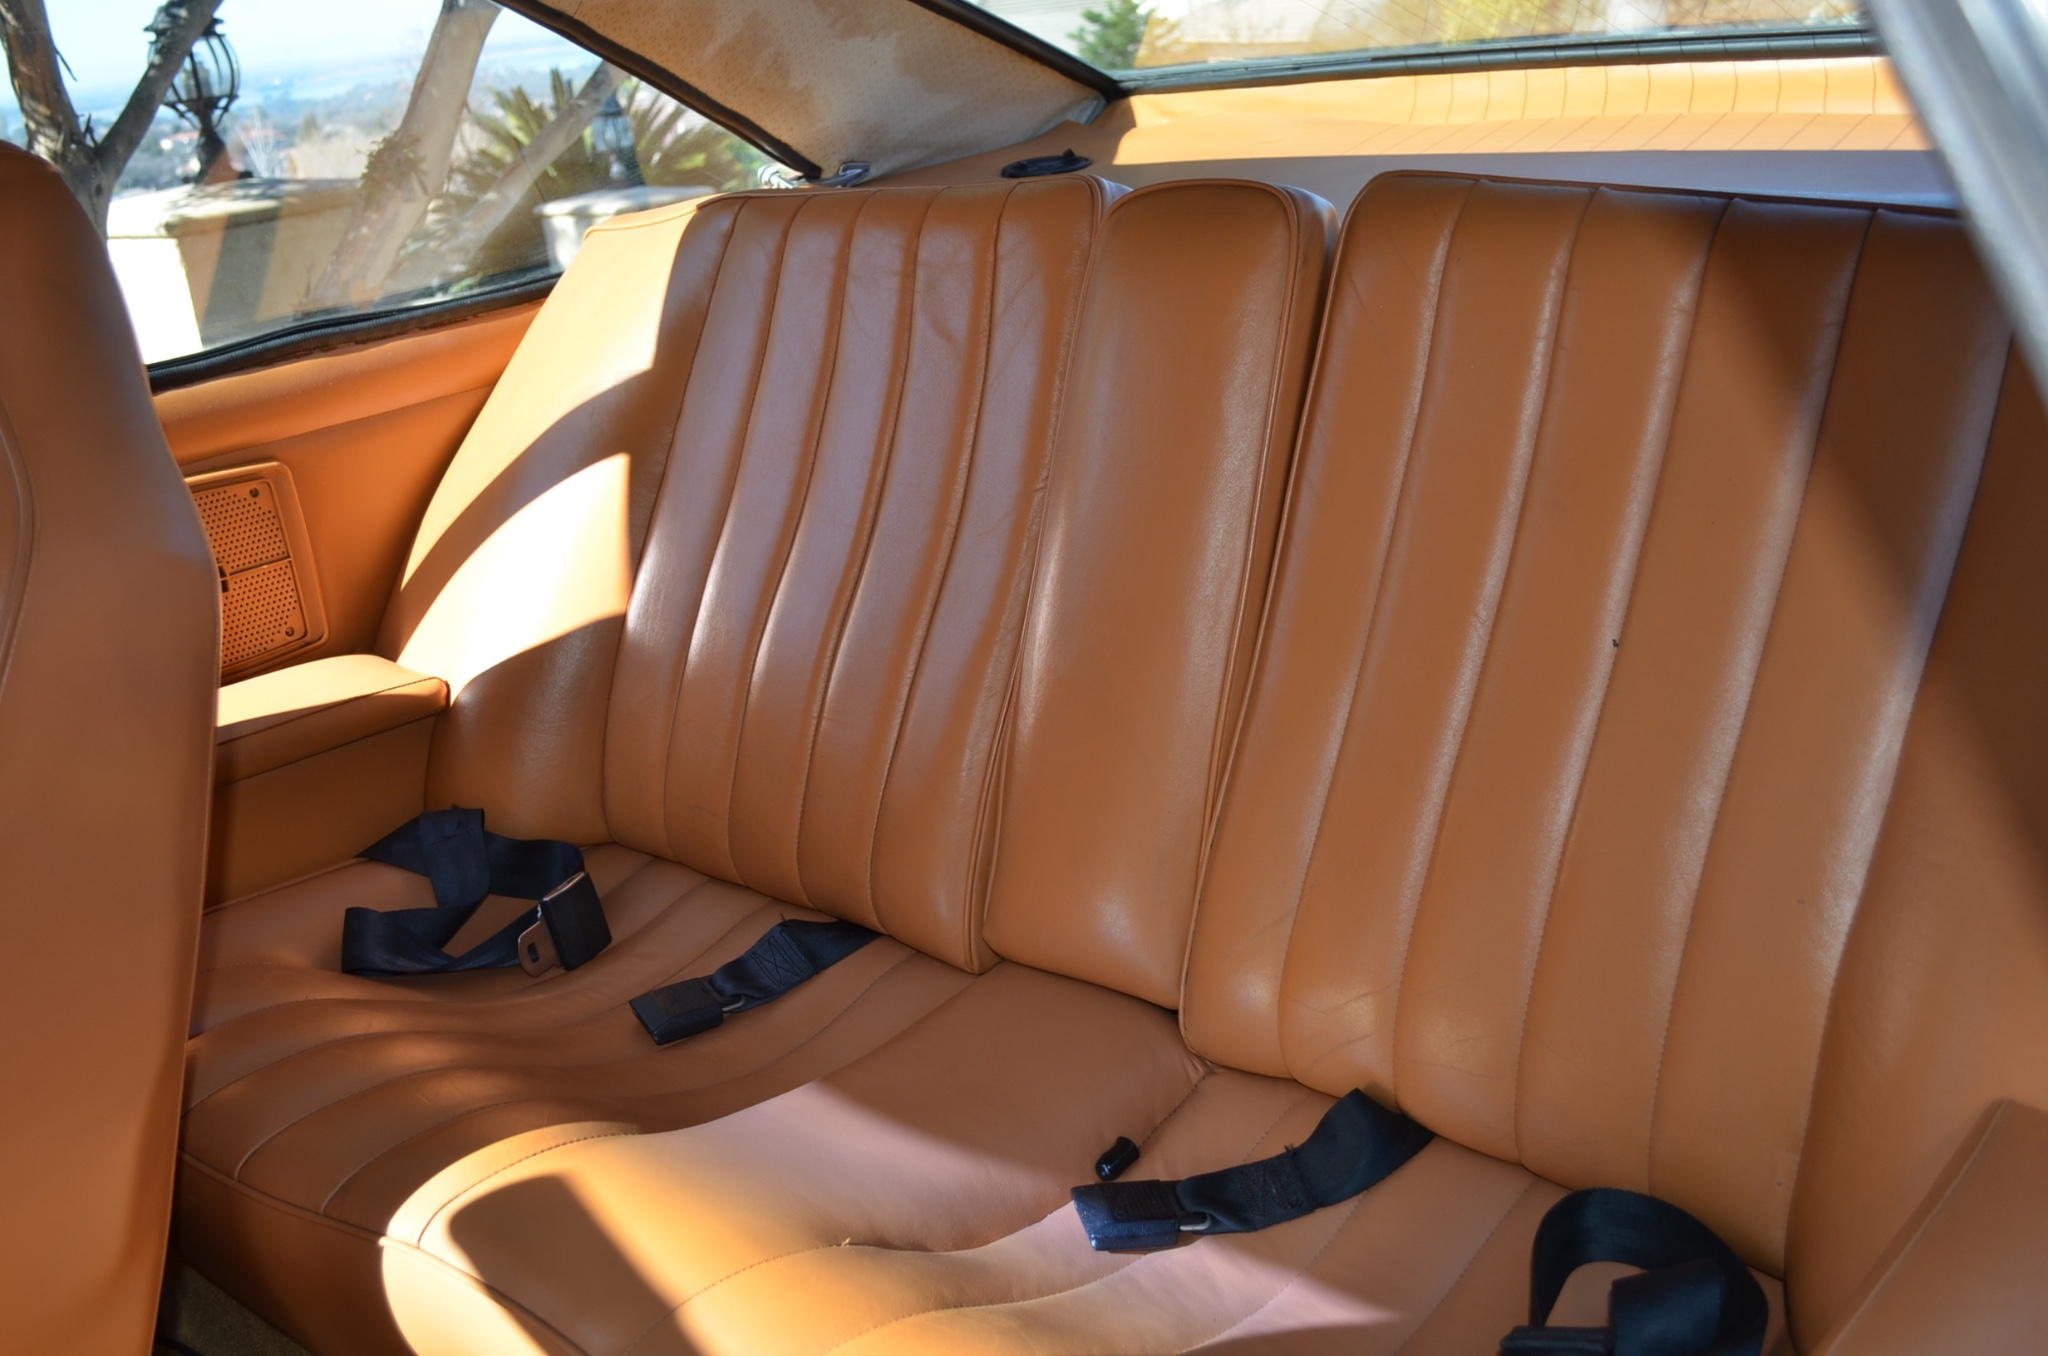 Seats and door trims look to be in excellent shape. Discolouration on roof lining is indicative of age and may need restoration. (Picture courtesy bringatrailer.com).